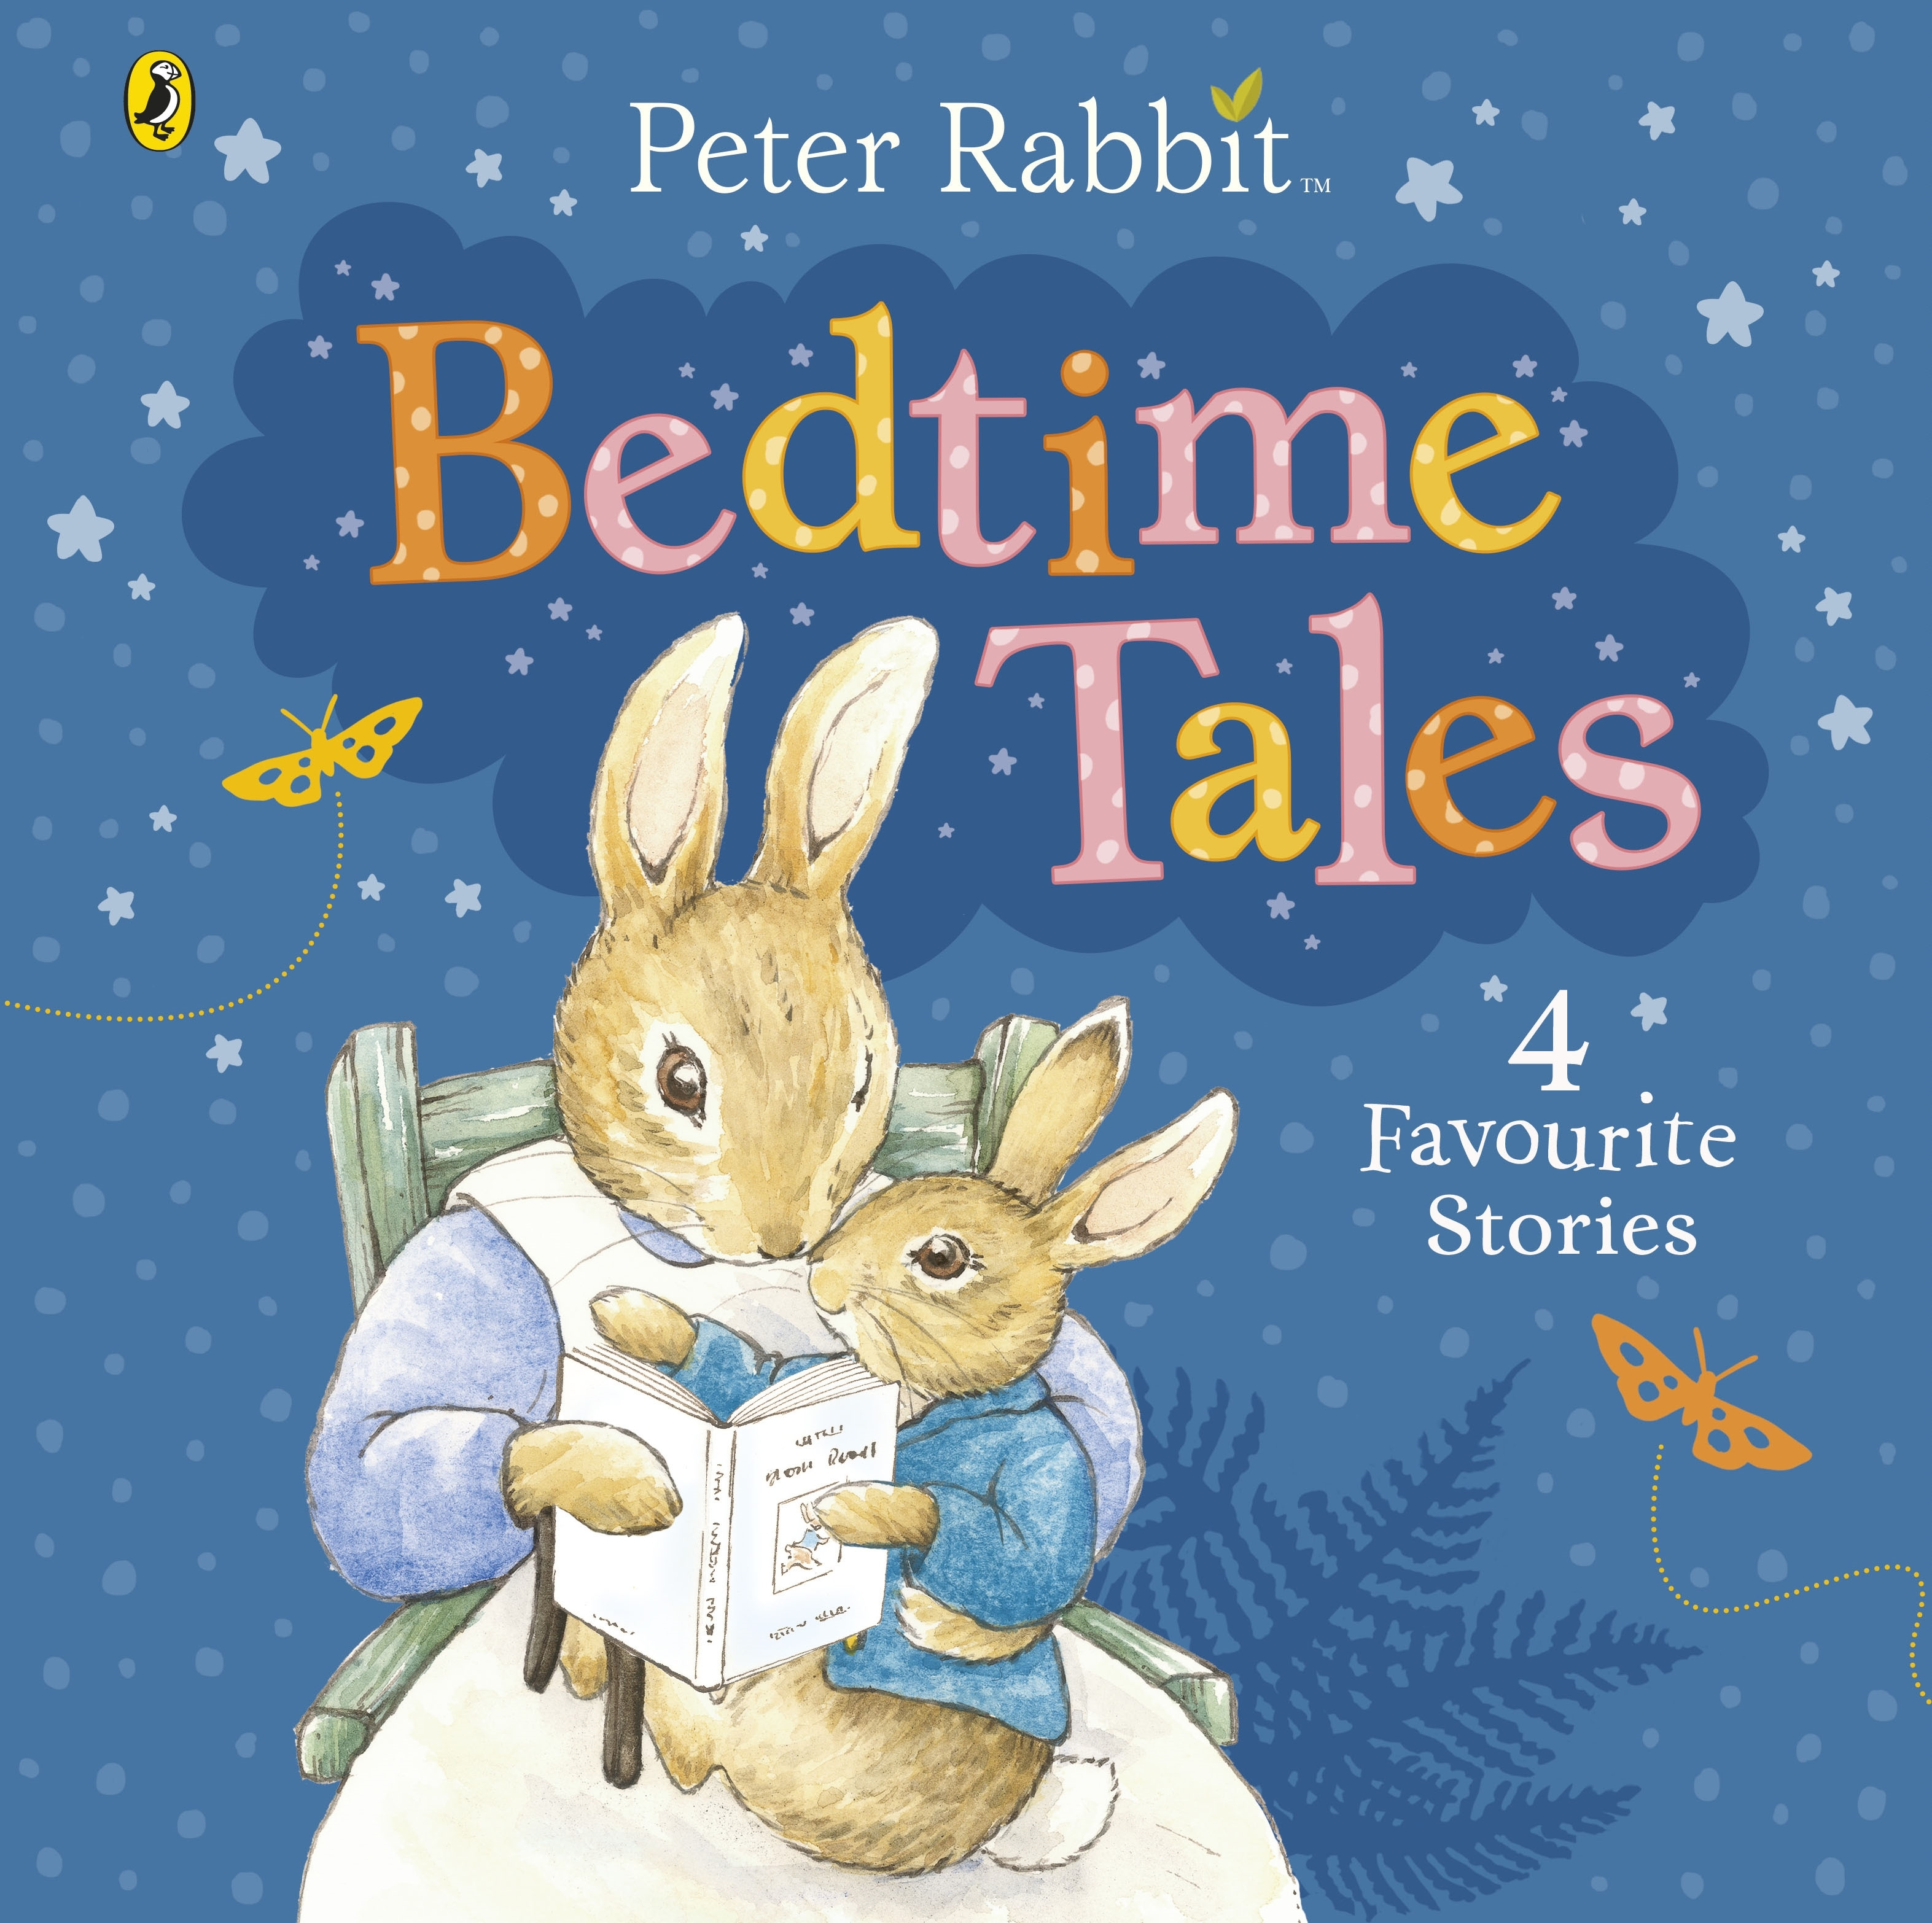 Peter Rabbit: The Tale Of Squirrel Nutkin by Beatrix ...